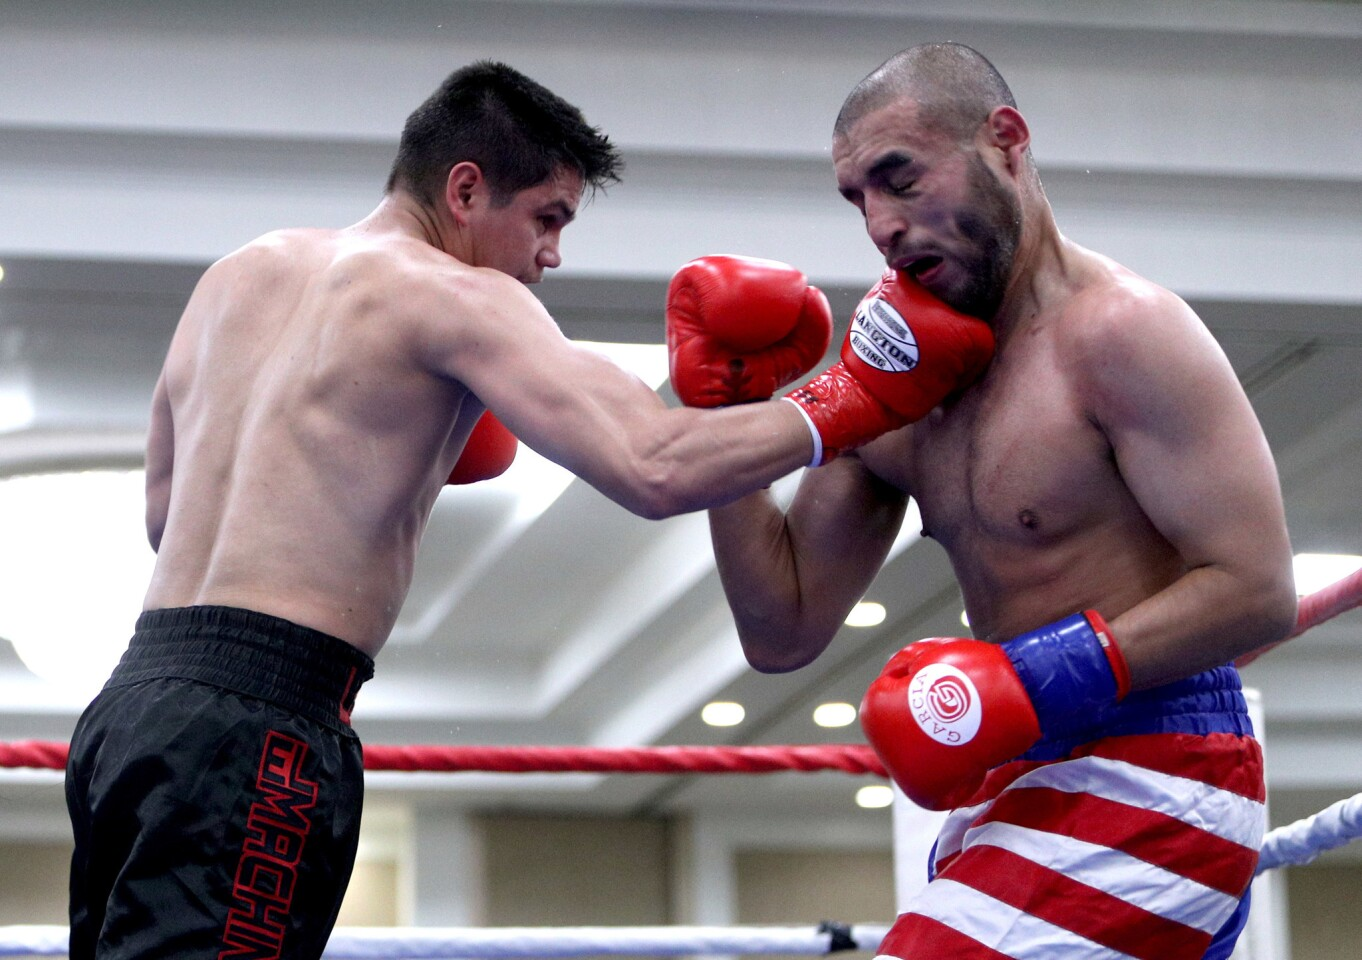 Photo Gallery: Burbank Boxing Club's Damien Lopez wins match at Commerce Casino